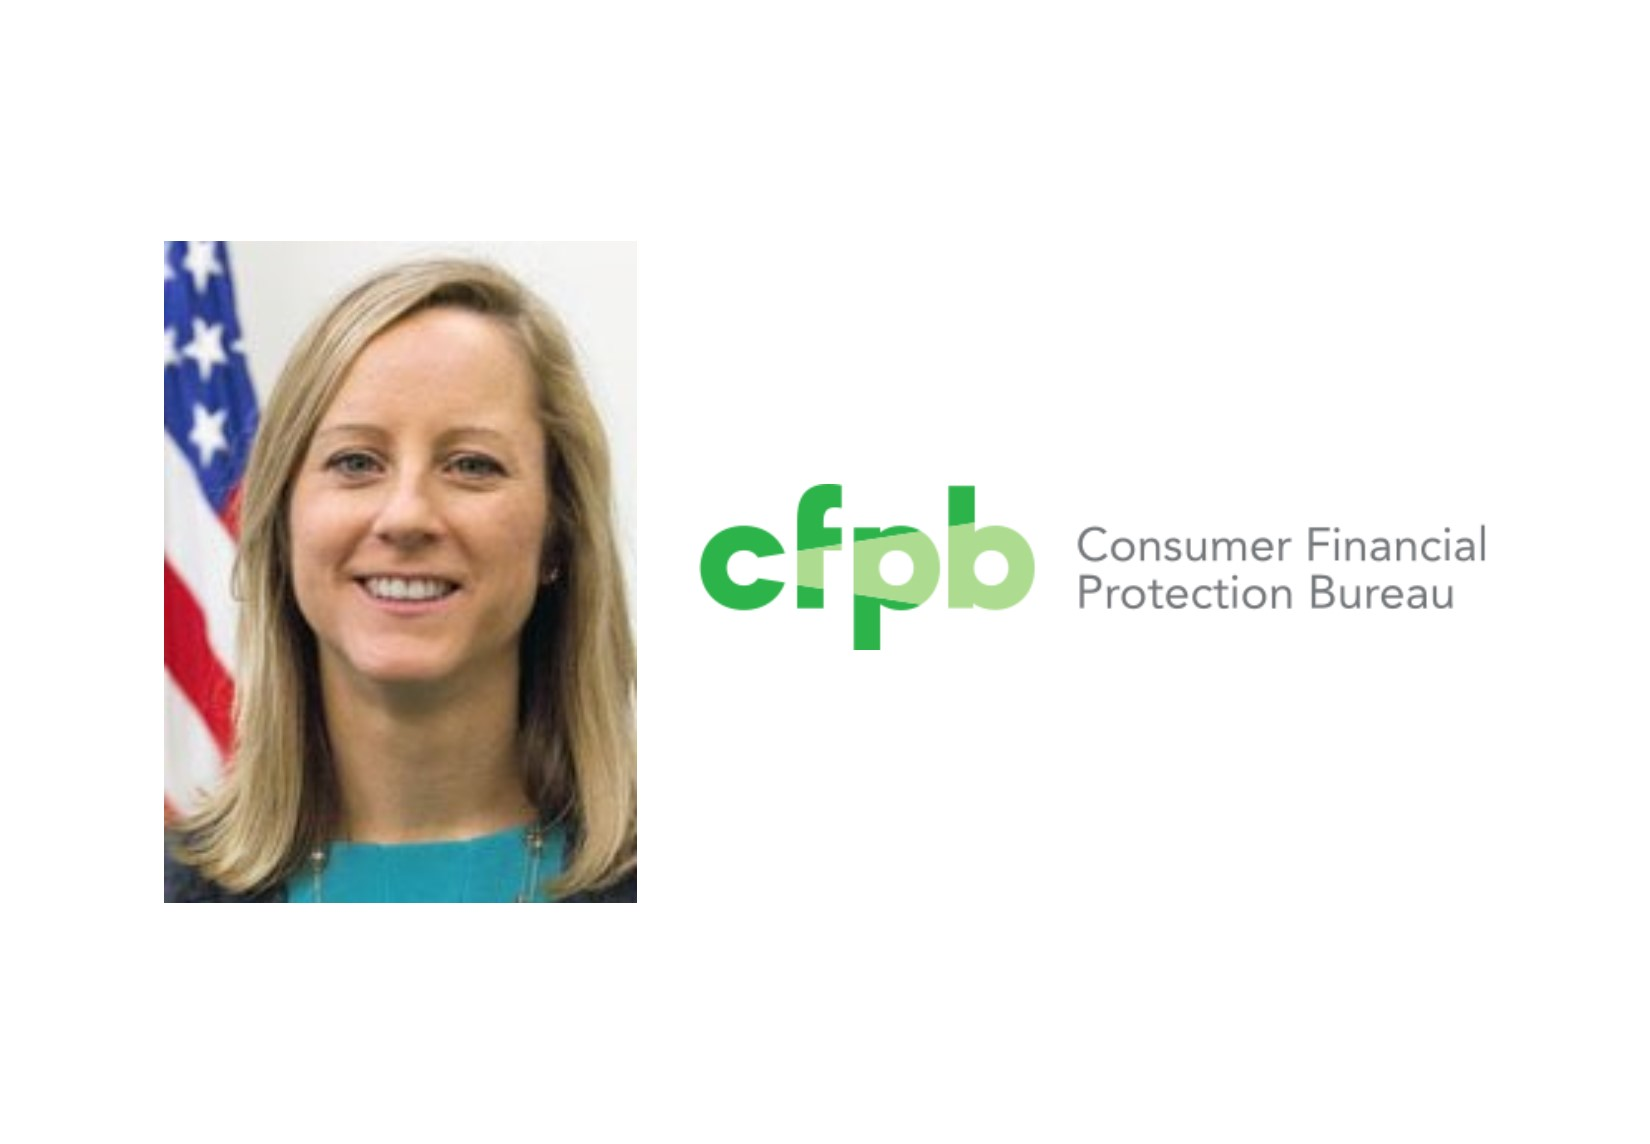 Kraninger Lays Out Her Vision For CFPB